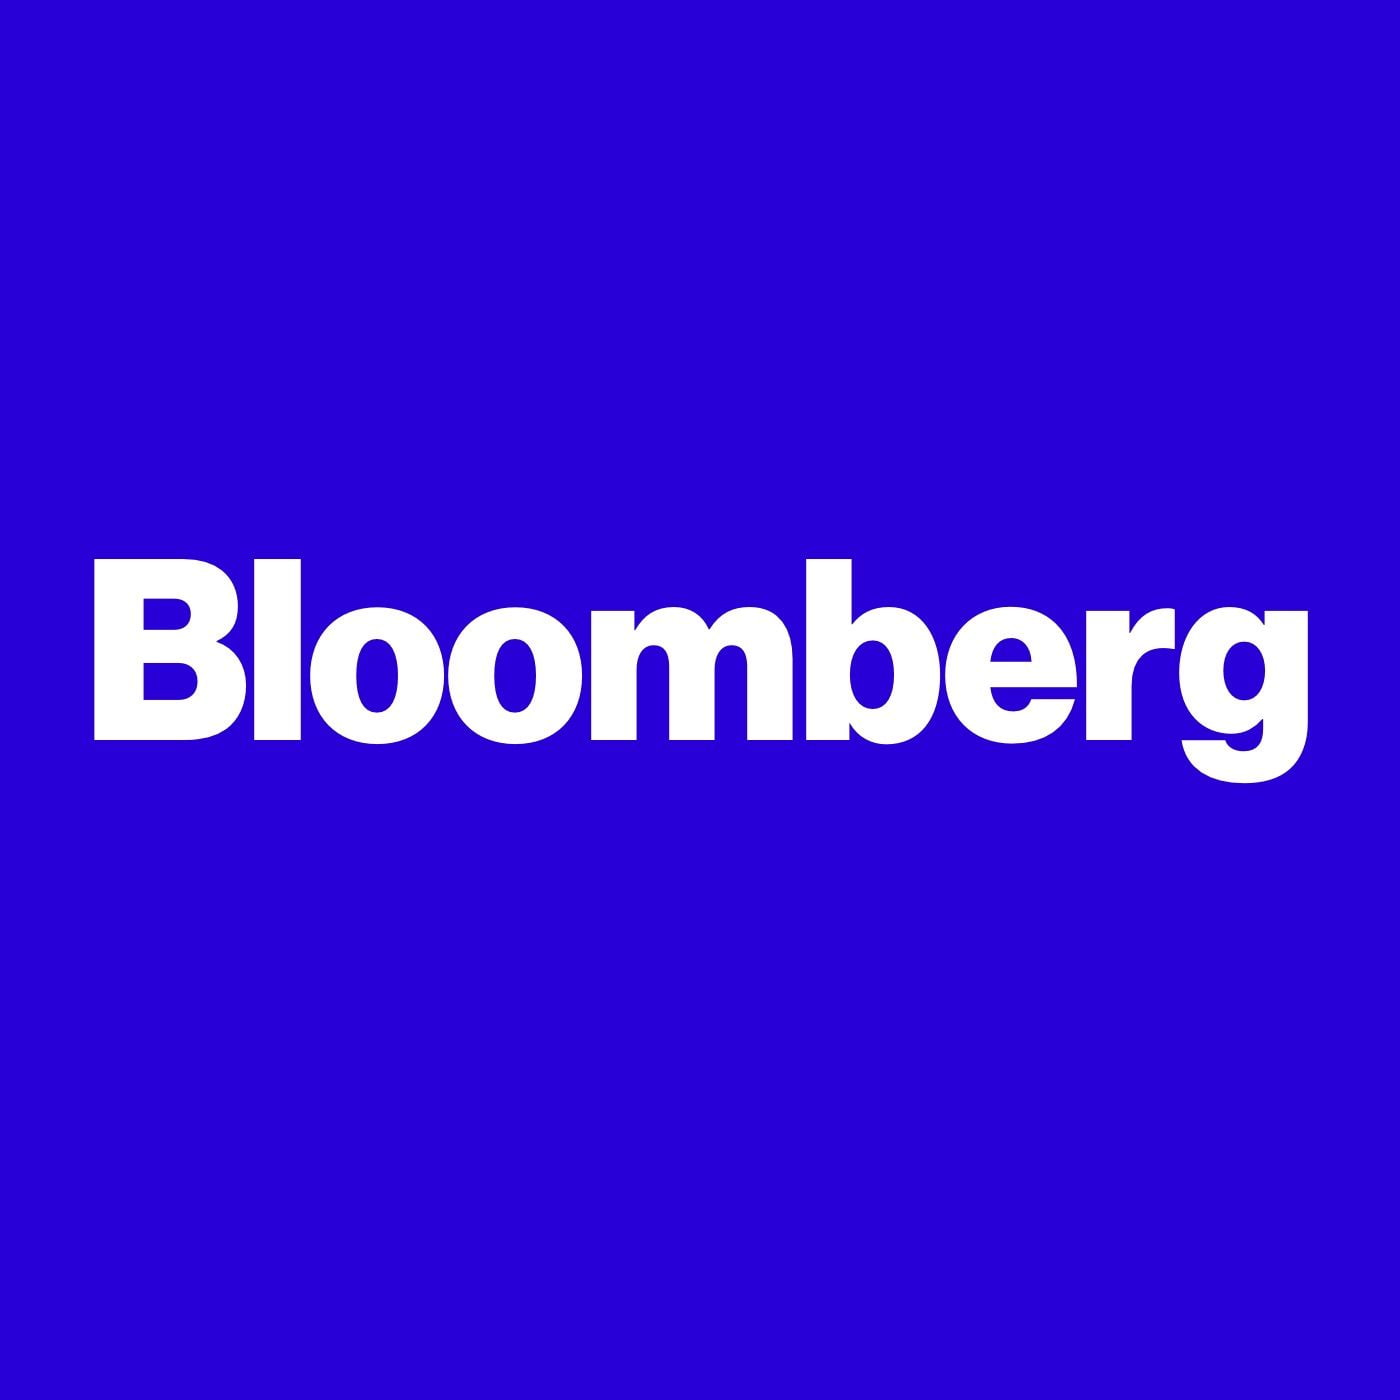 Bloomberg on the blue background